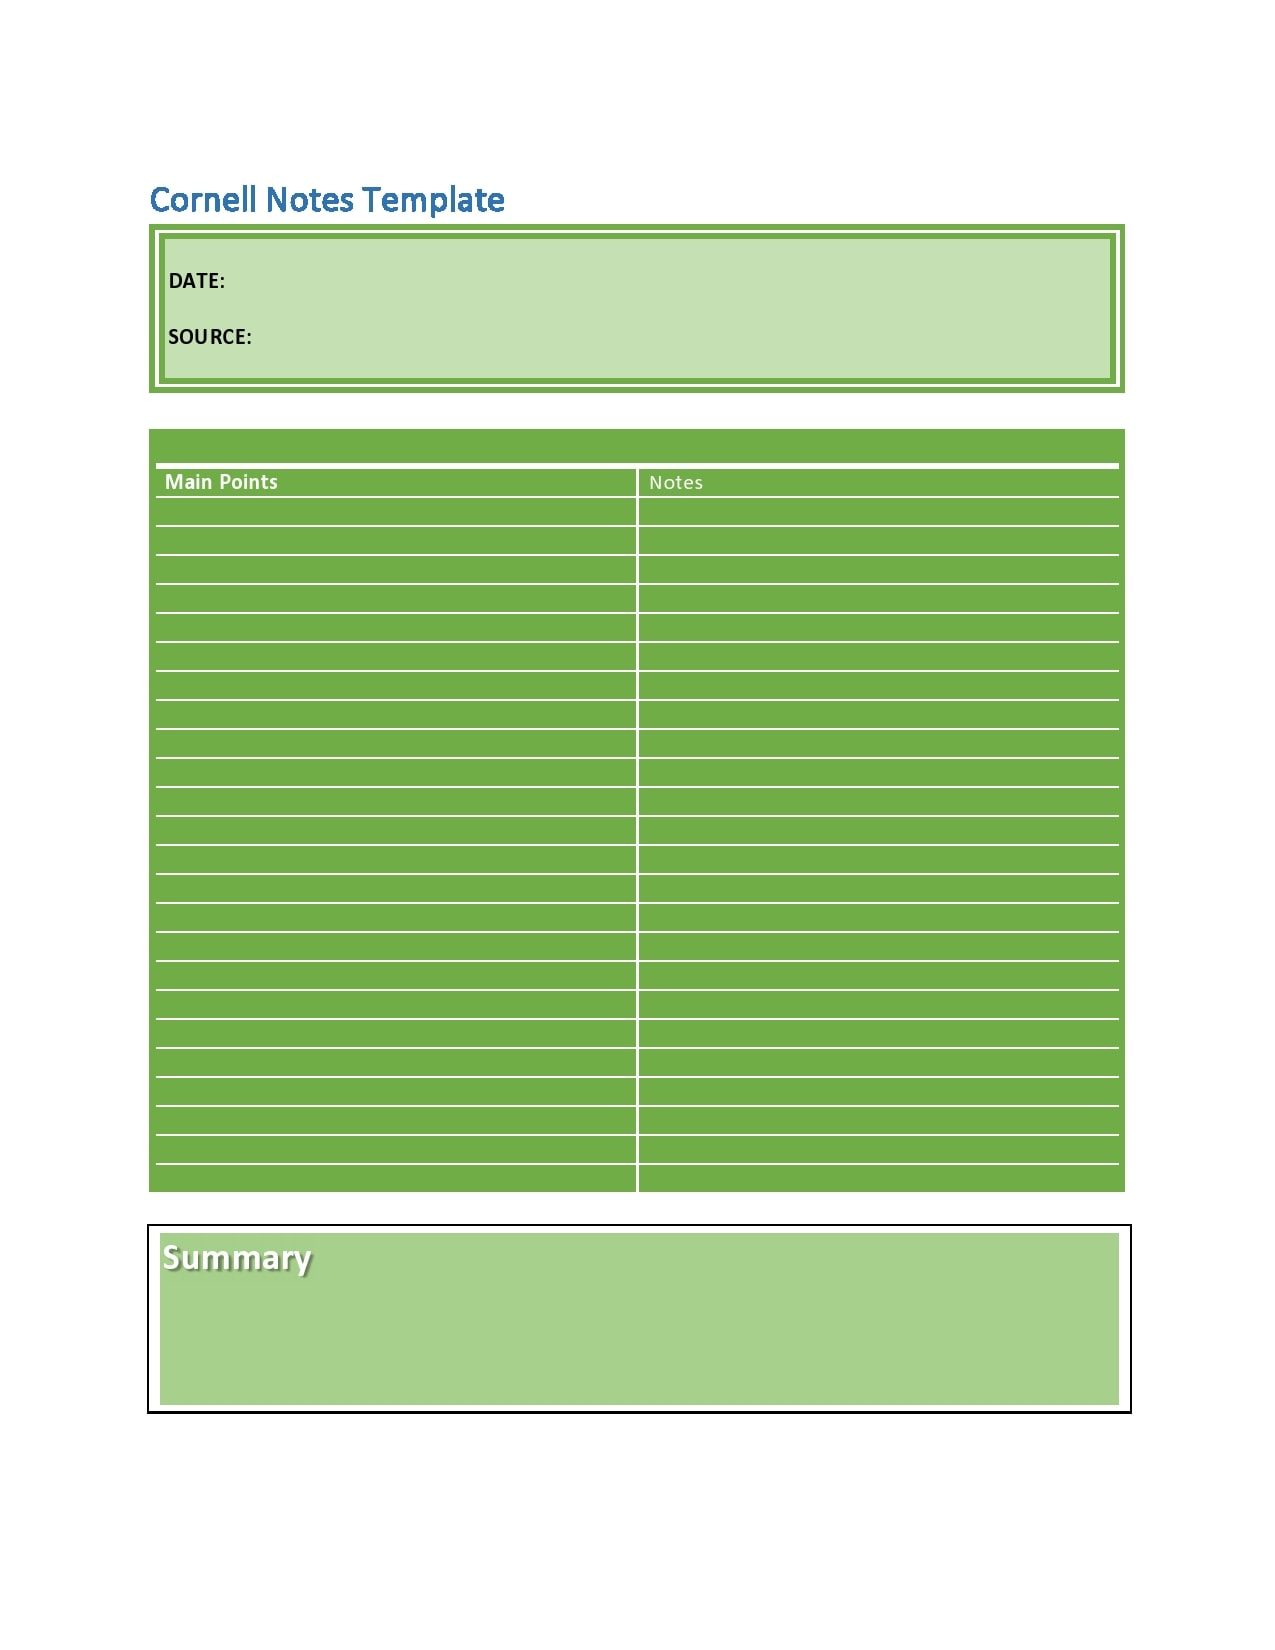 cornell notes template 13